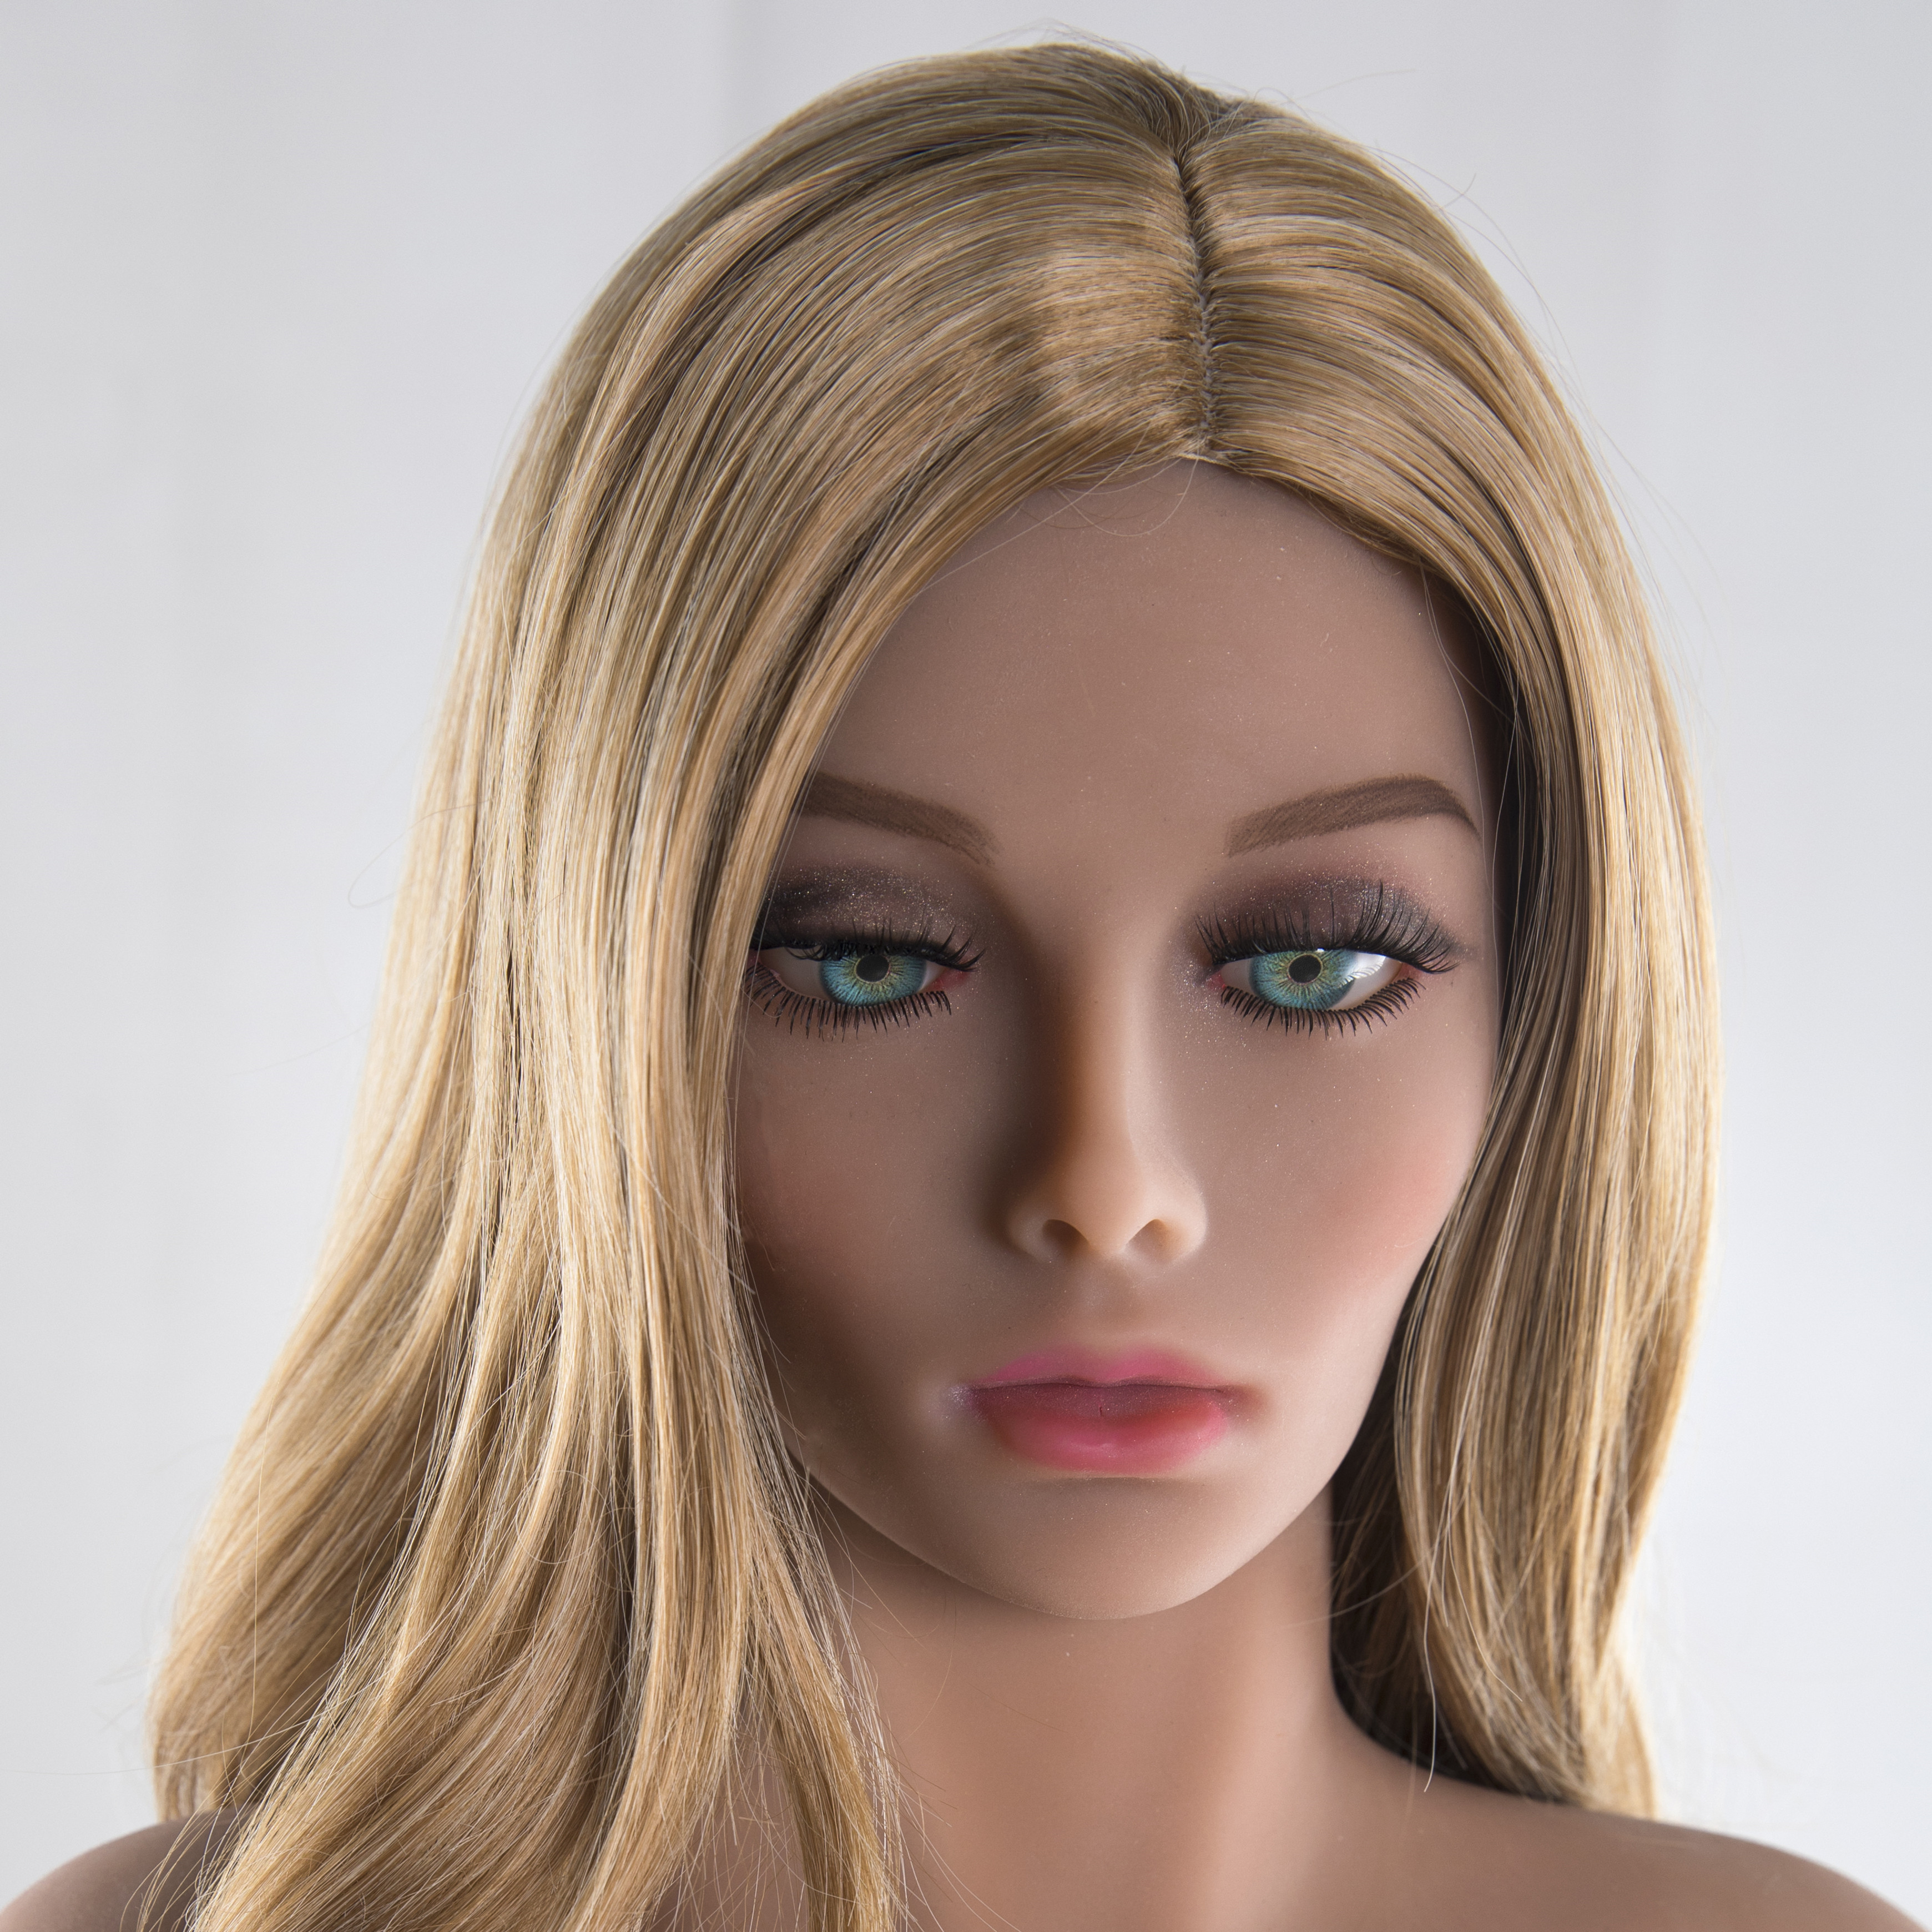 TPE Beauty Head <font><b>Doll</b></font> Customize Skin Tone for 140cm to <font><b>176cm</b></font> Full Size <font><b>Sex</b></font> <font><b>Dolls</b></font> with Oral <font><b>Sex</b></font> Hole Men Masturbation image